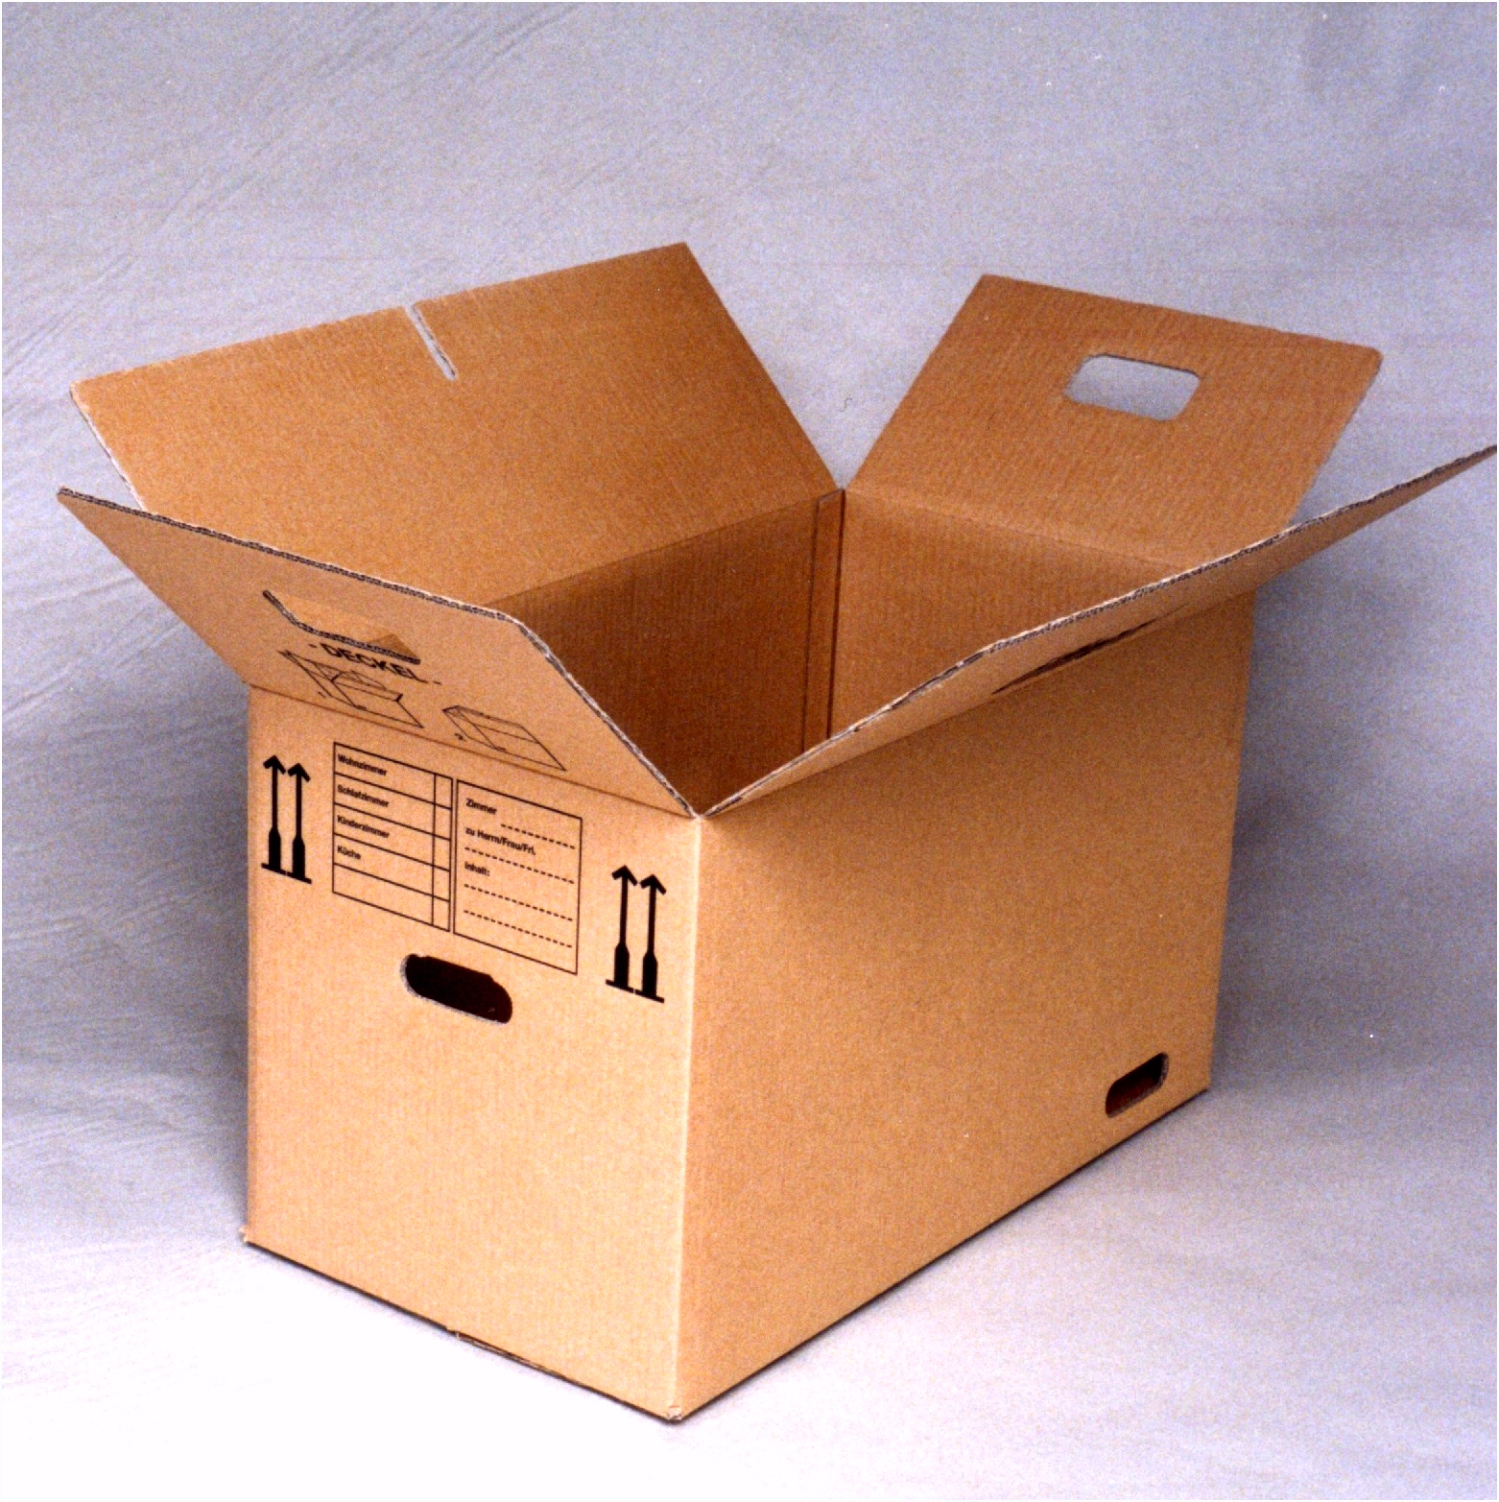 Corrugated box design